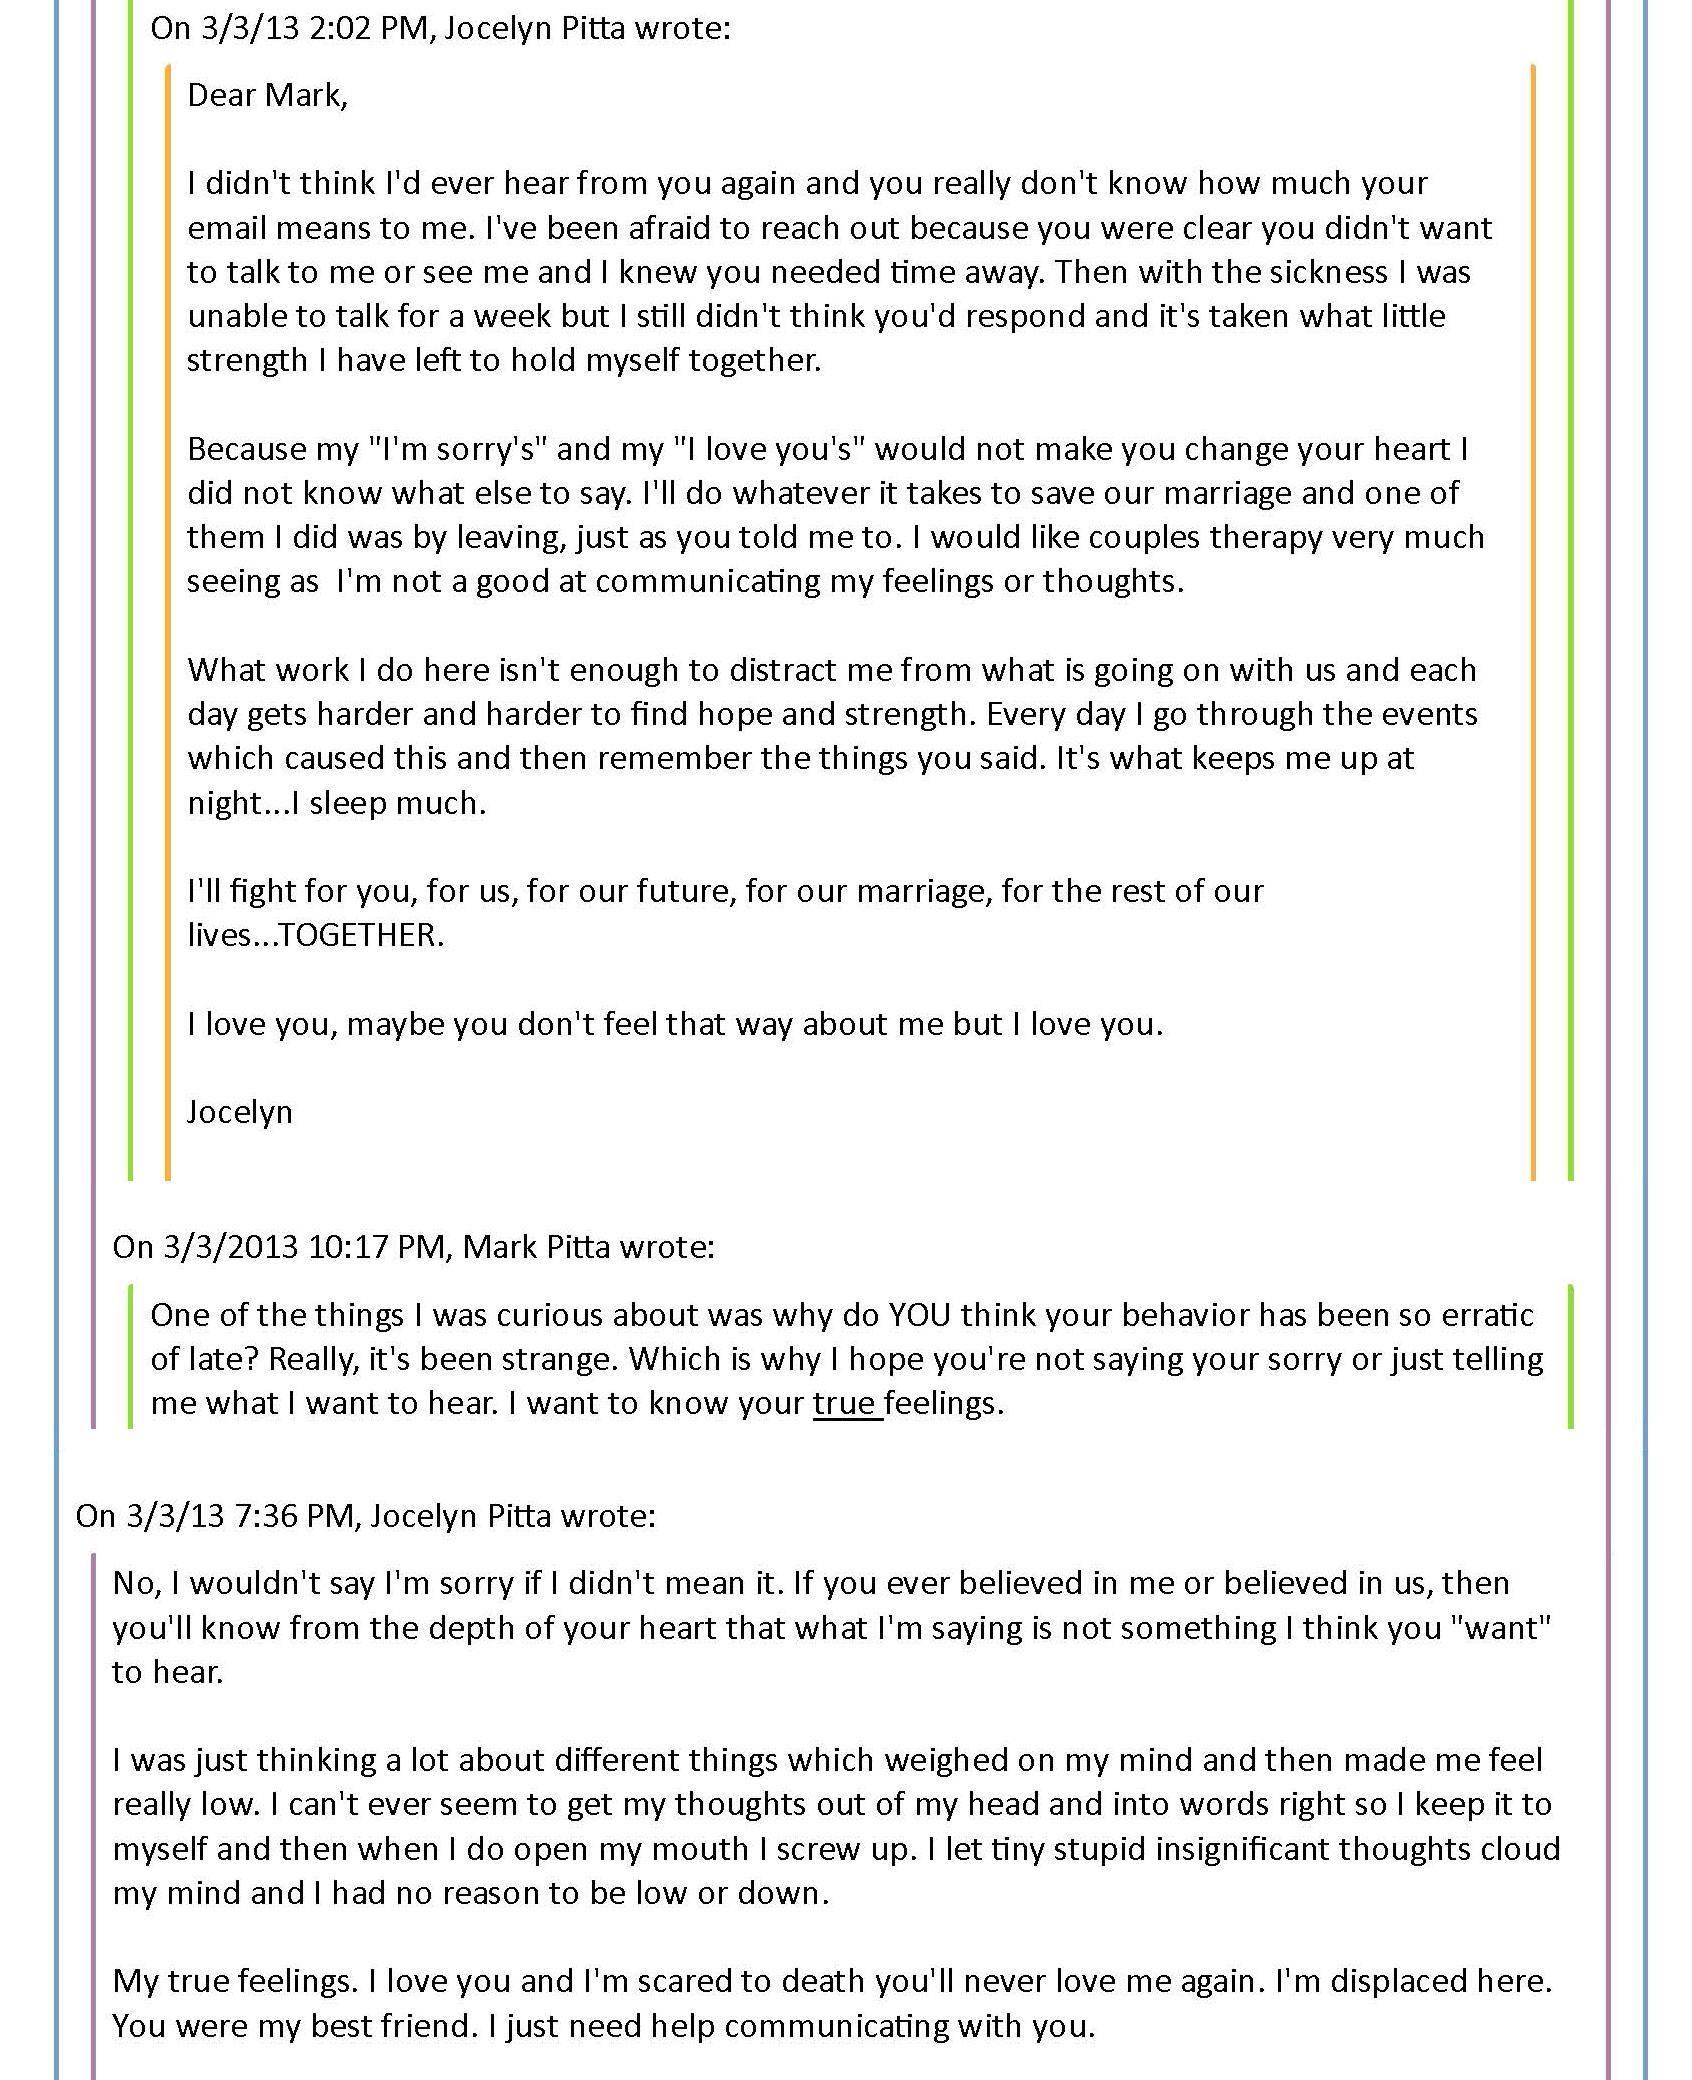 mark pitta a sick wife will be punished and thrown out pt  mark pitta email reflection pg 2